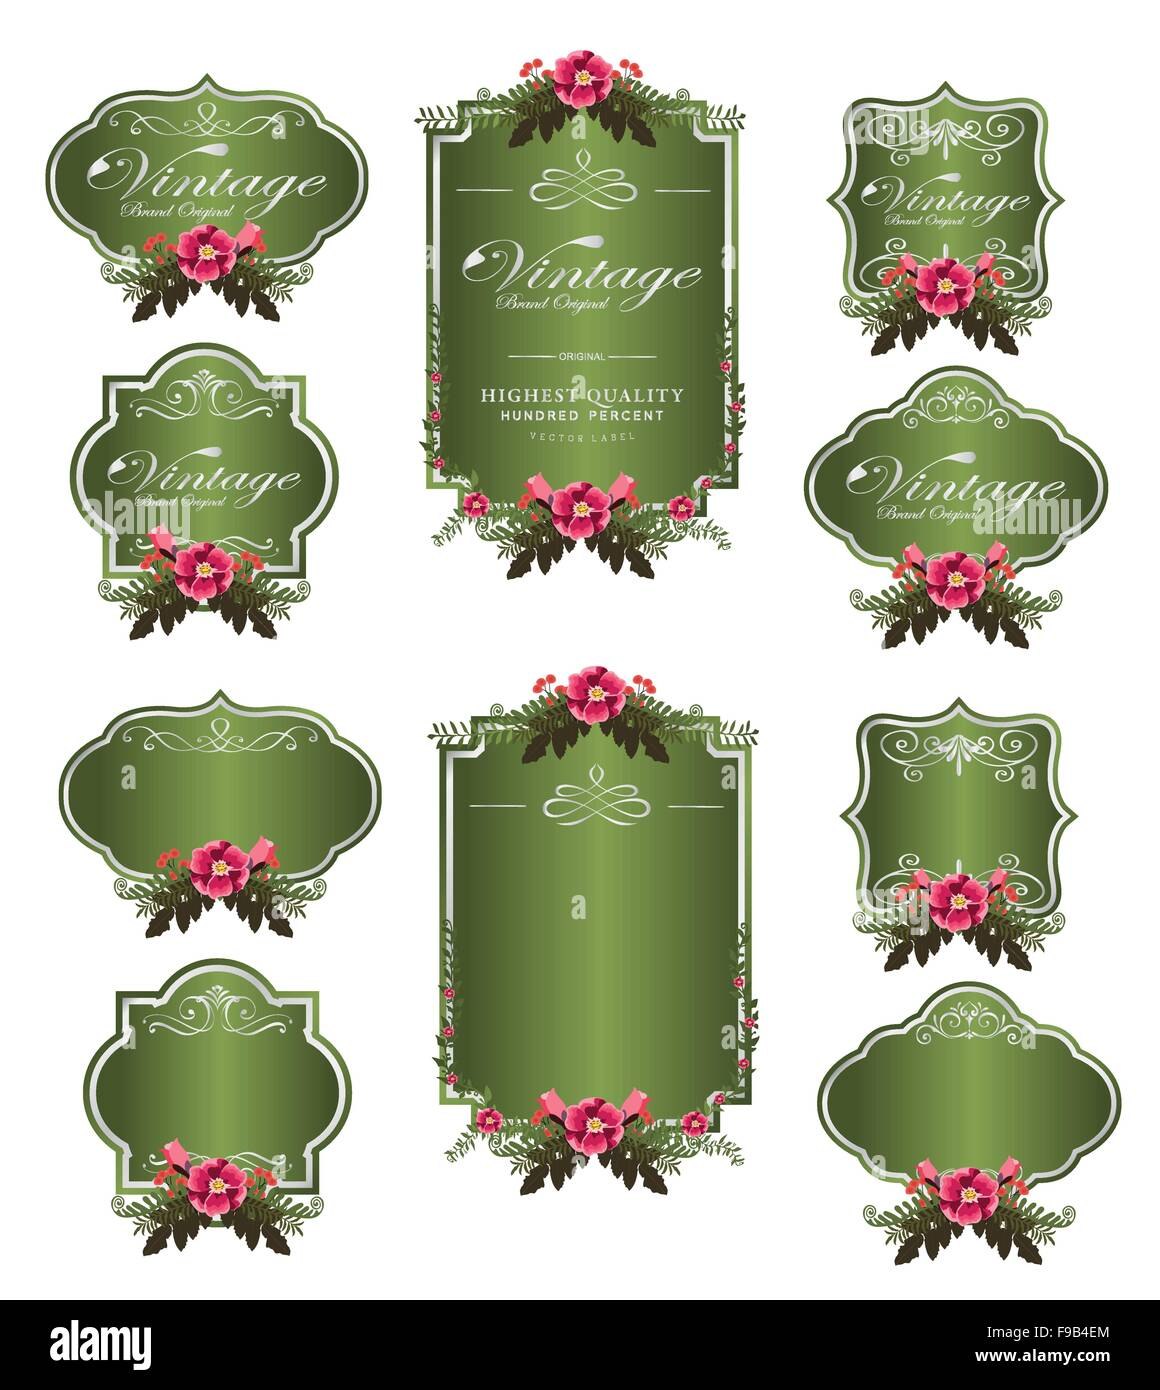 green luxury invitation flower labels and blank labels - Stock Image